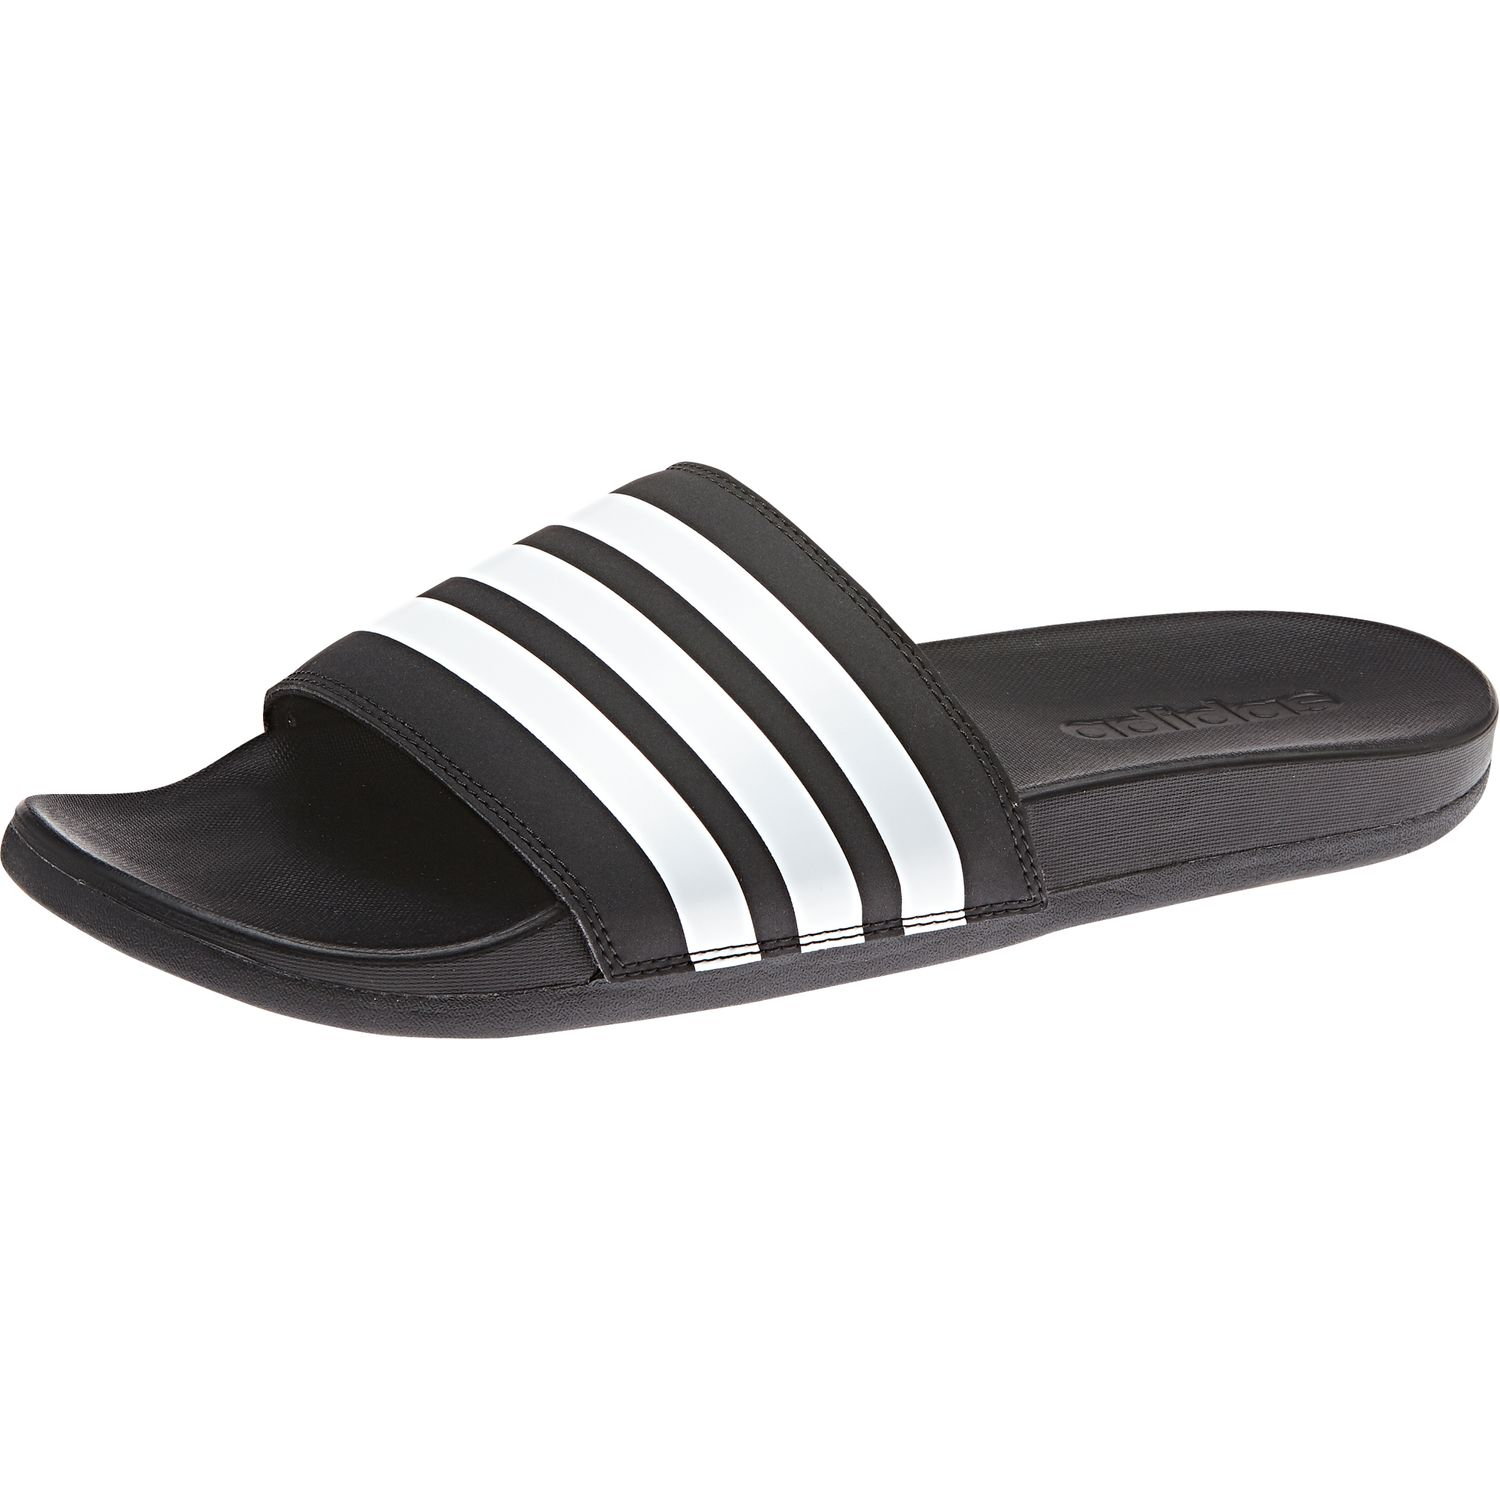 adidas adilette comfort pantolette cf hausschuhe ap9971. Black Bedroom Furniture Sets. Home Design Ideas